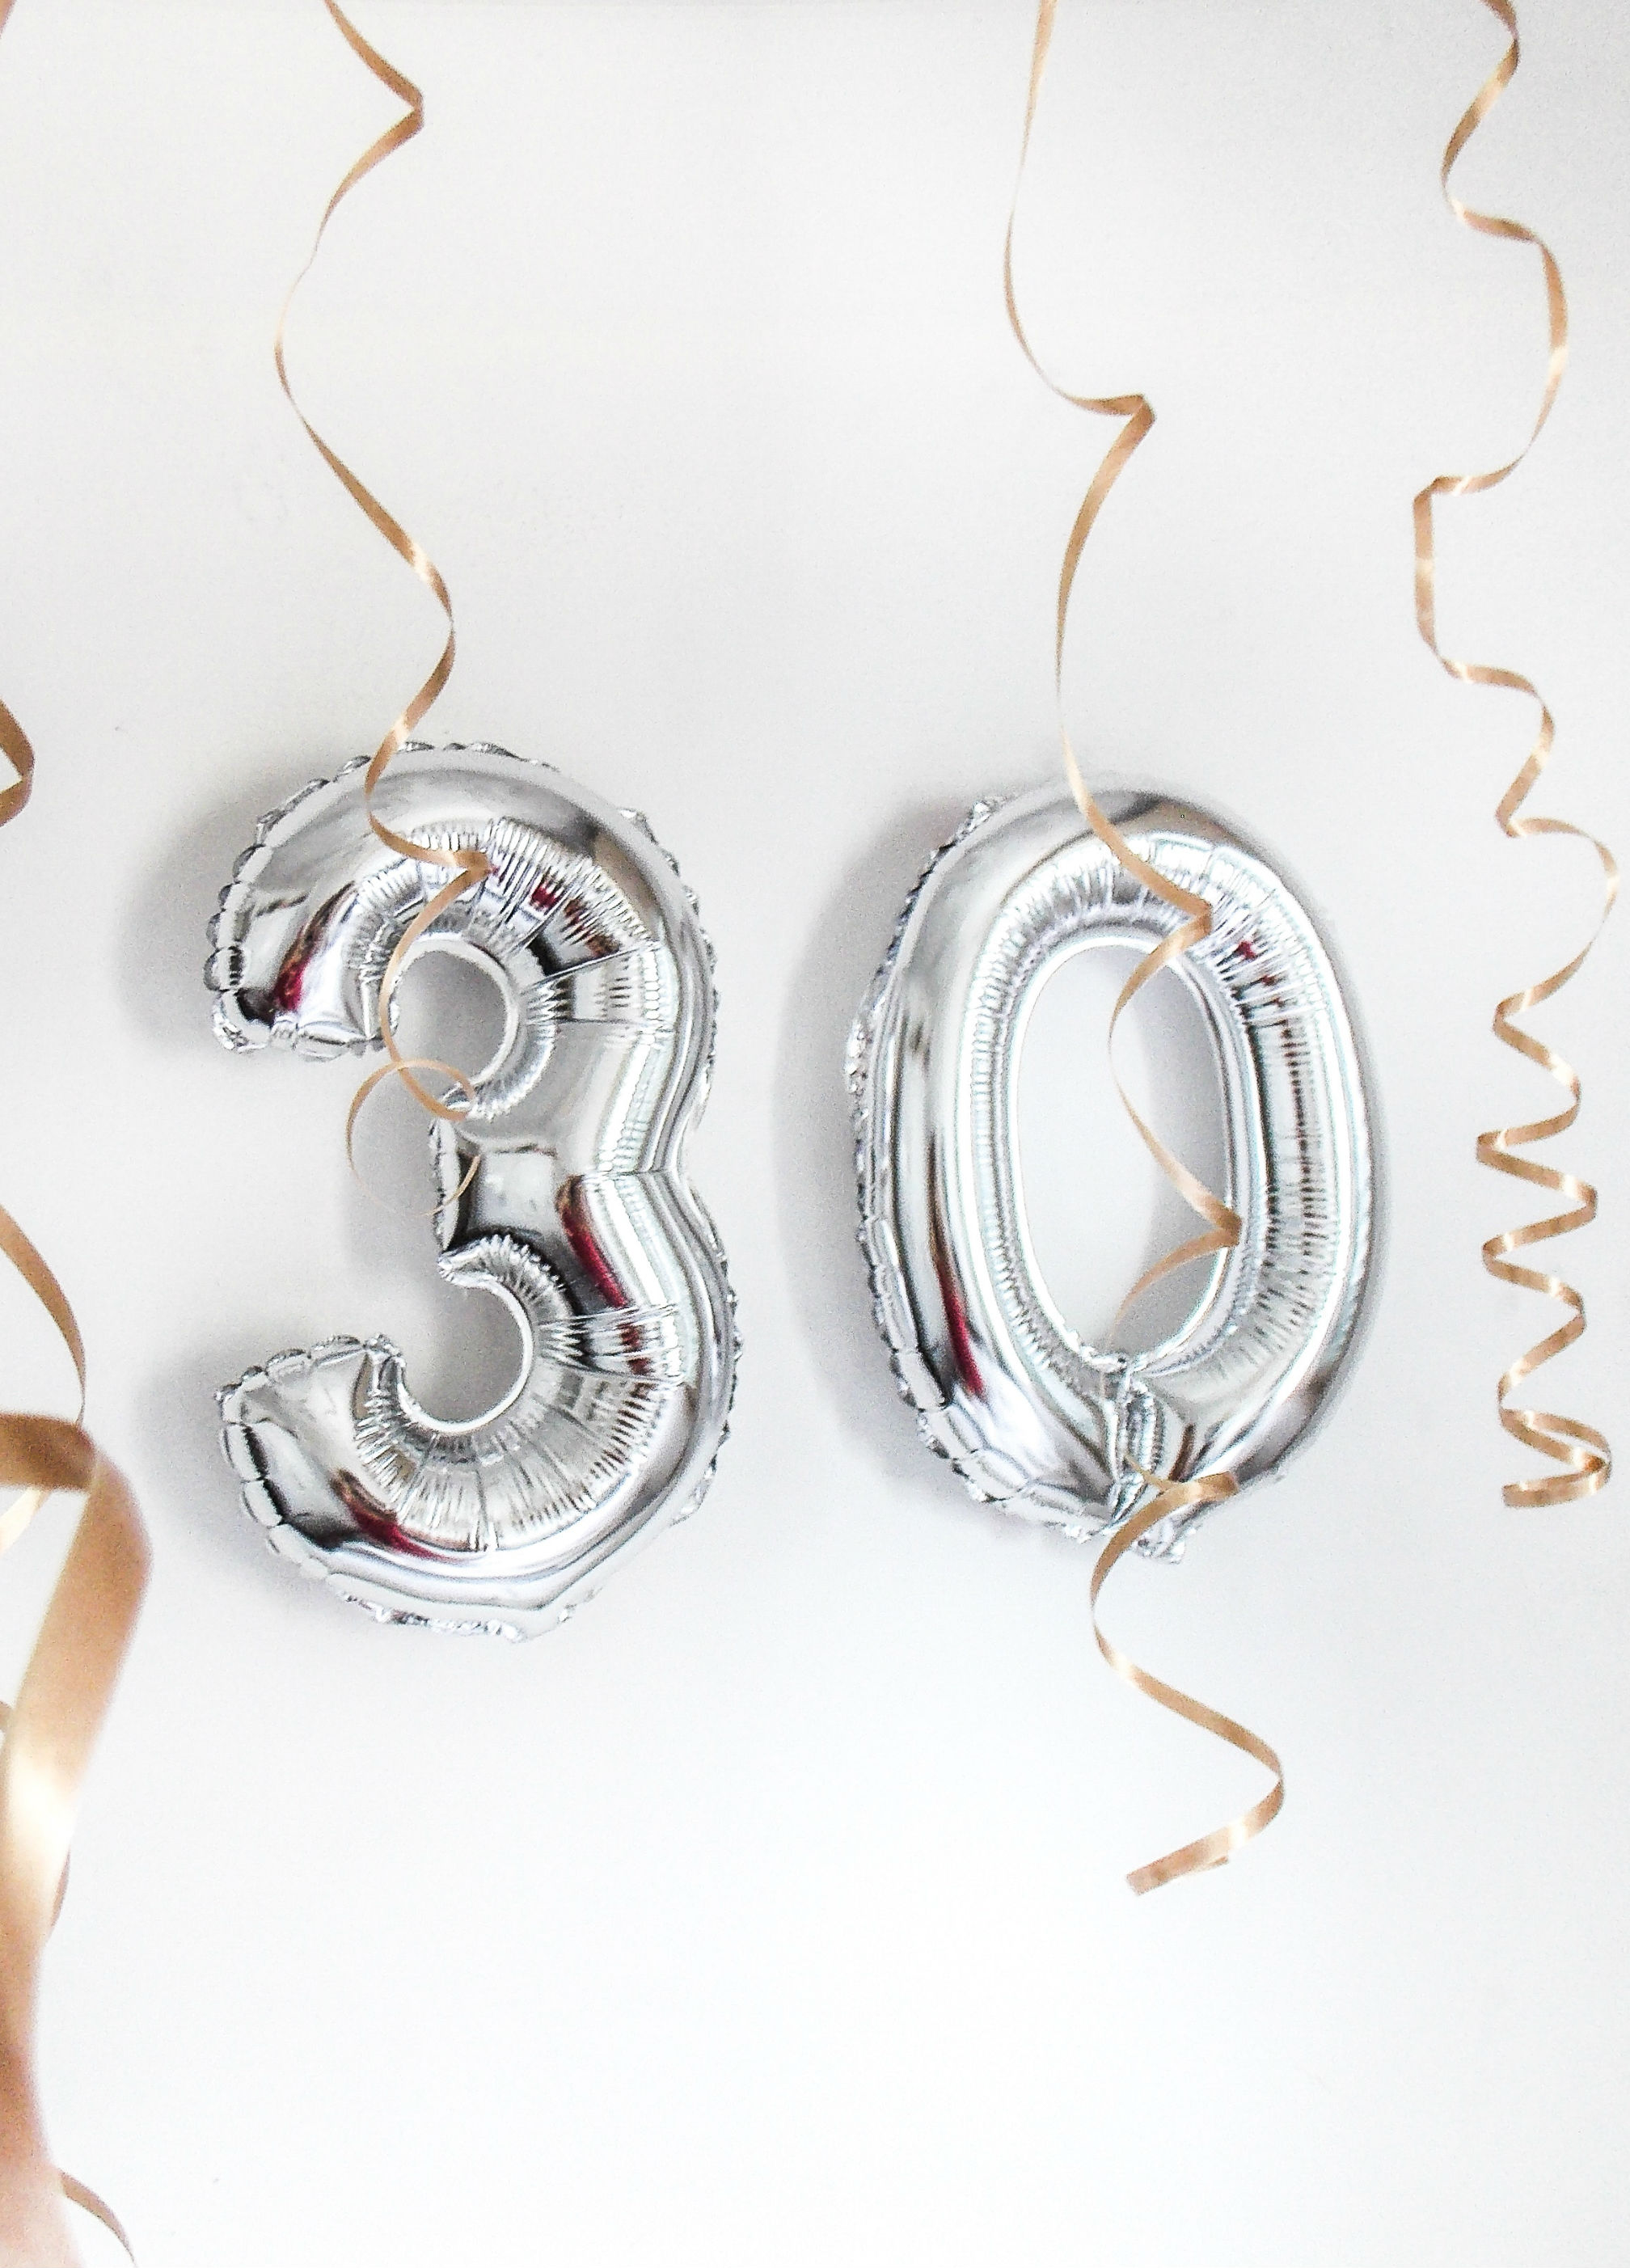 30 Things To Do Before You Turn 30 (Pt. 1)